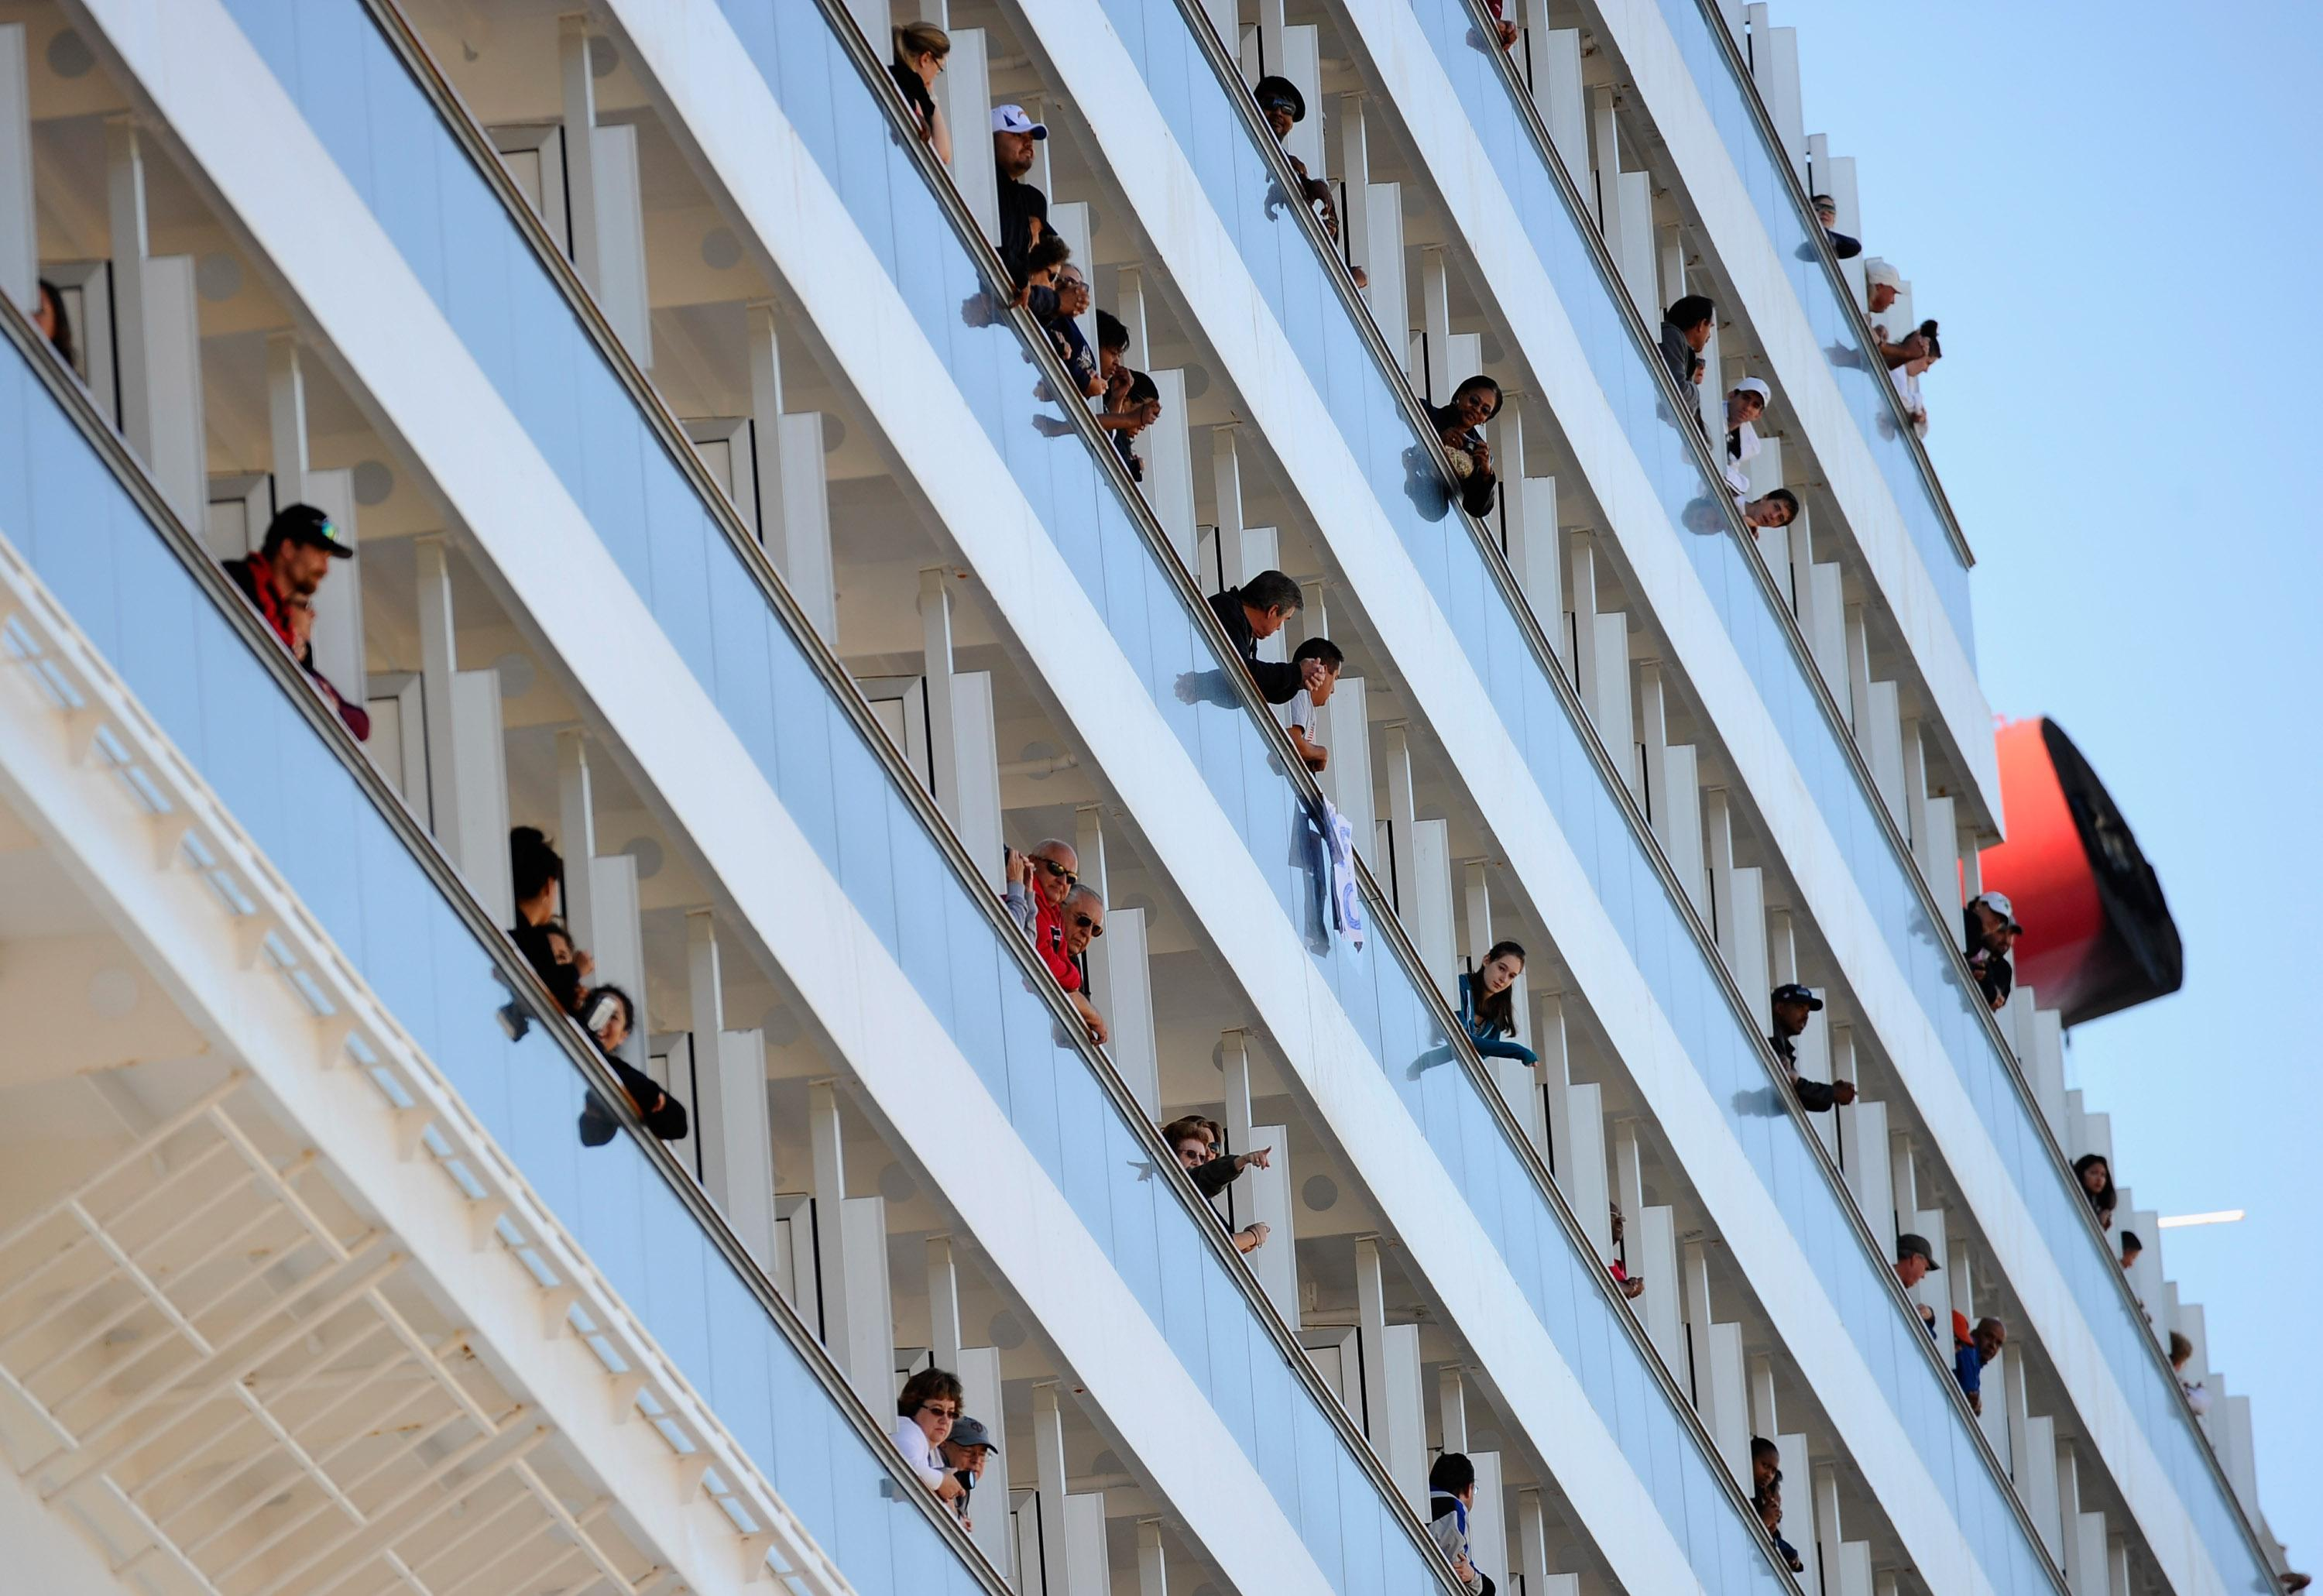 Norovirus sinks 91 passengers on first day of South Pacific cruise